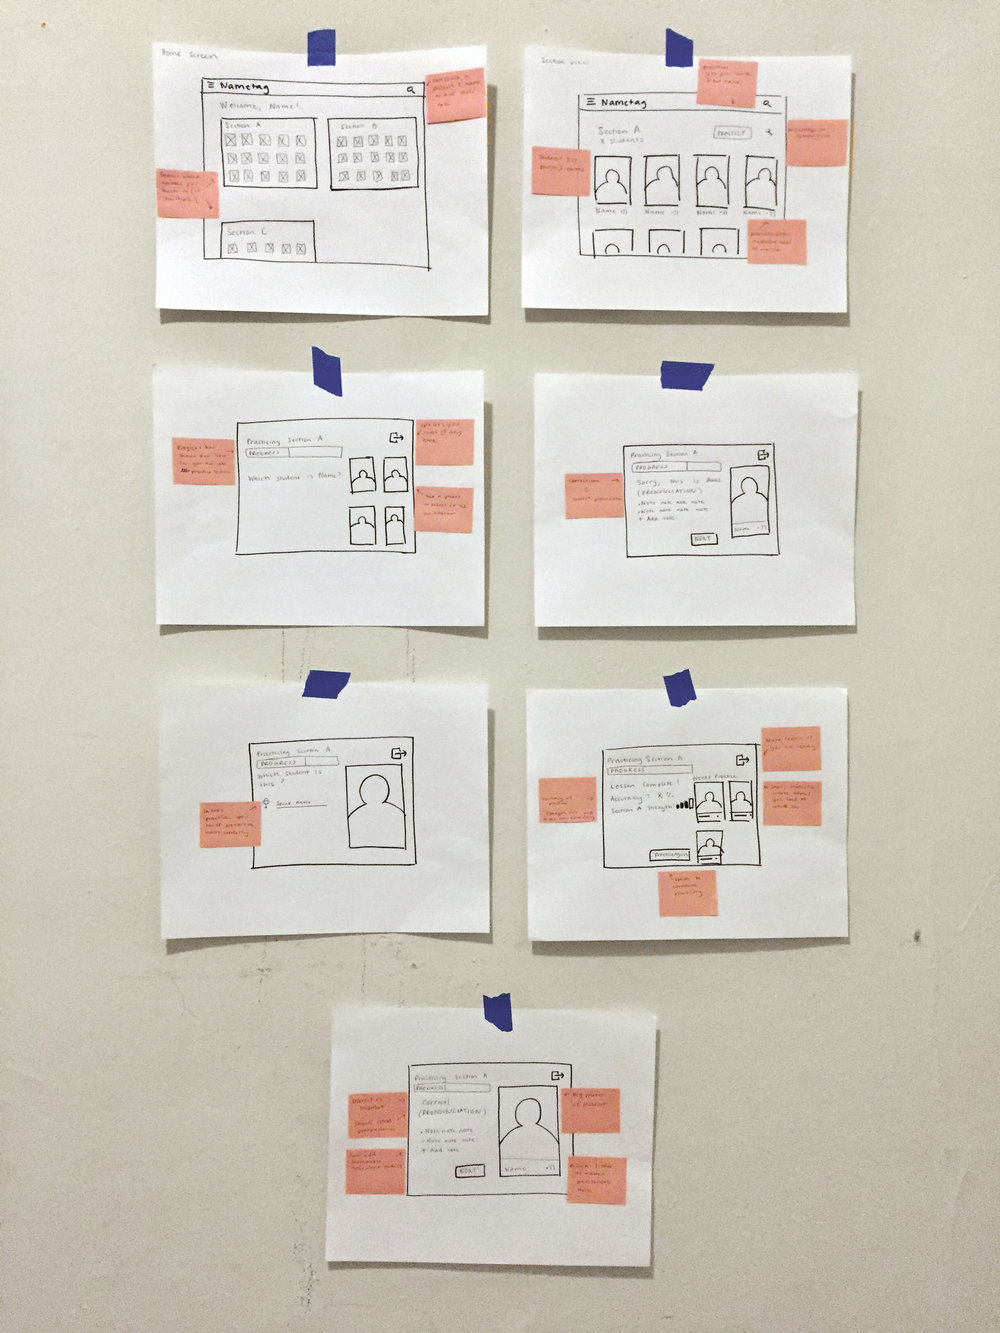 Annotated wireframes taped to the wall for critique